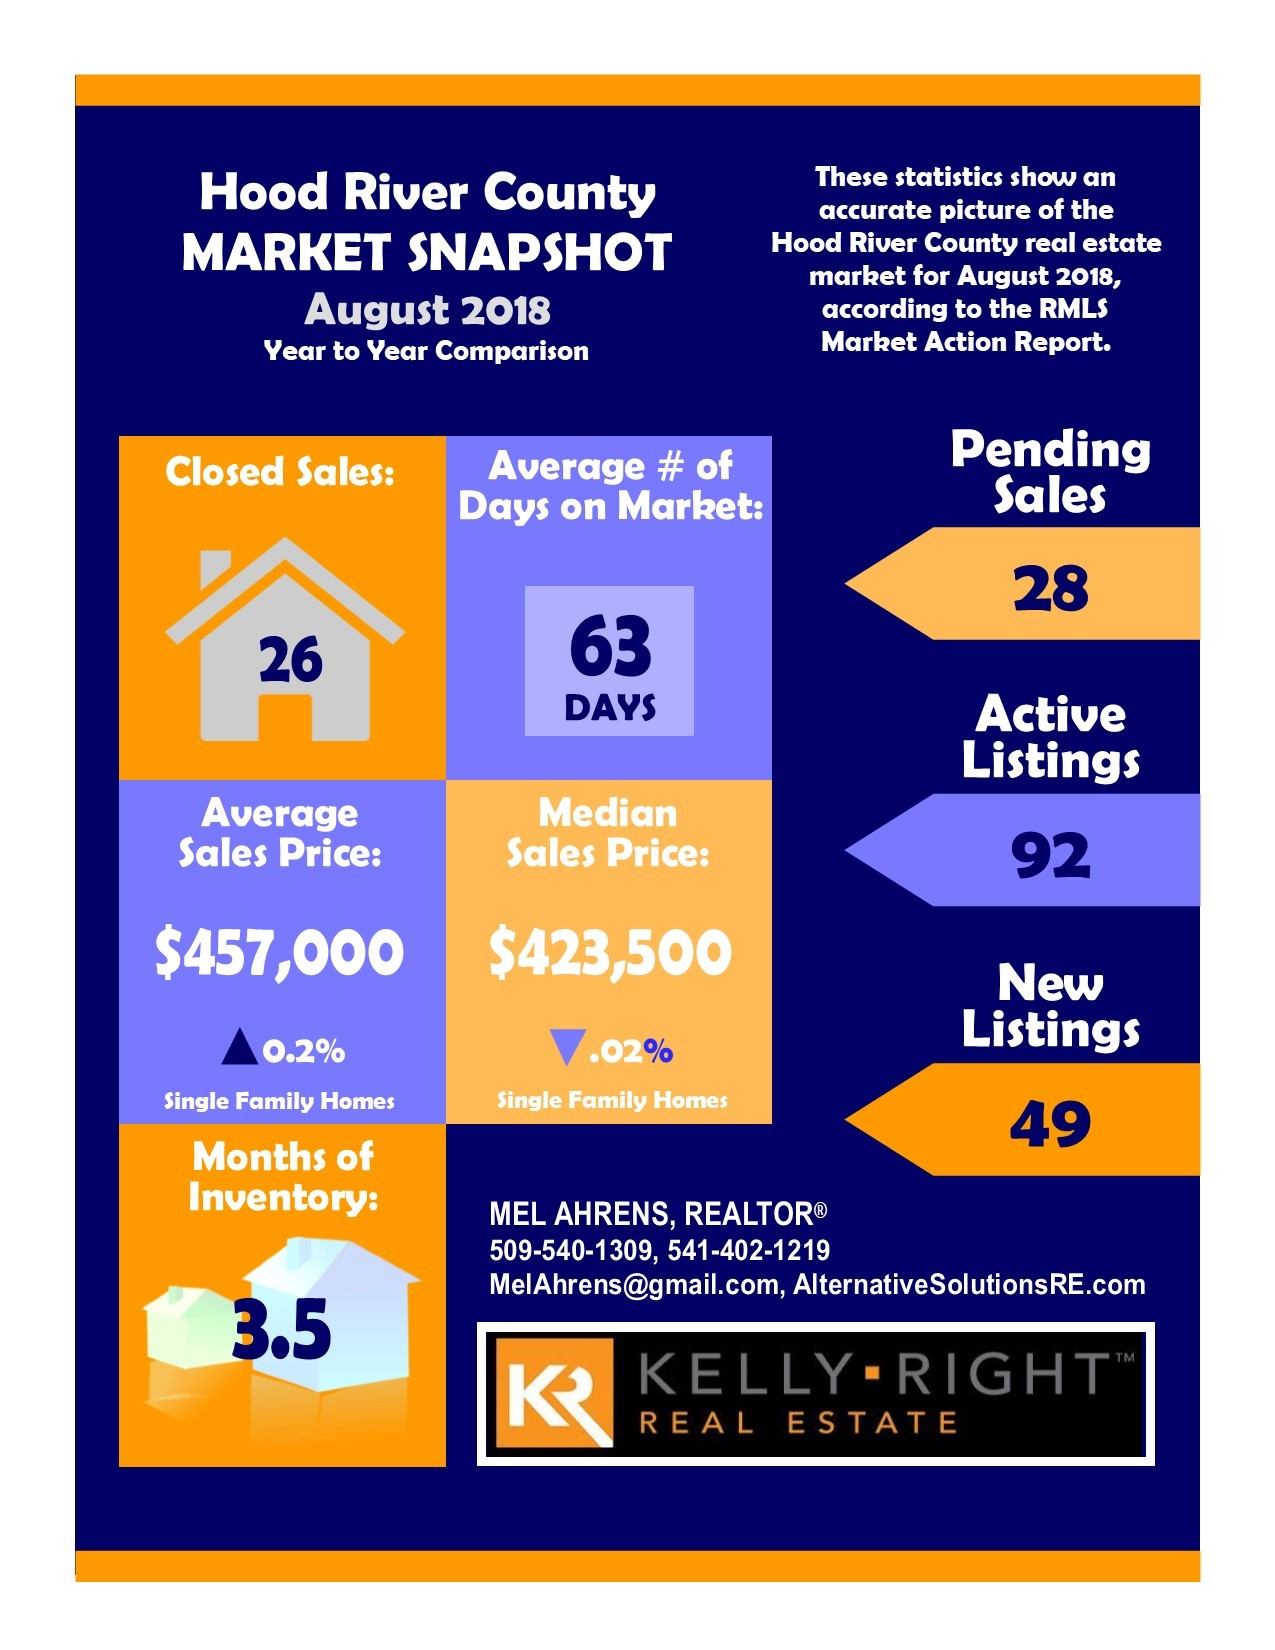 Hood River County Real Estate Market Report August 2018 Infographic